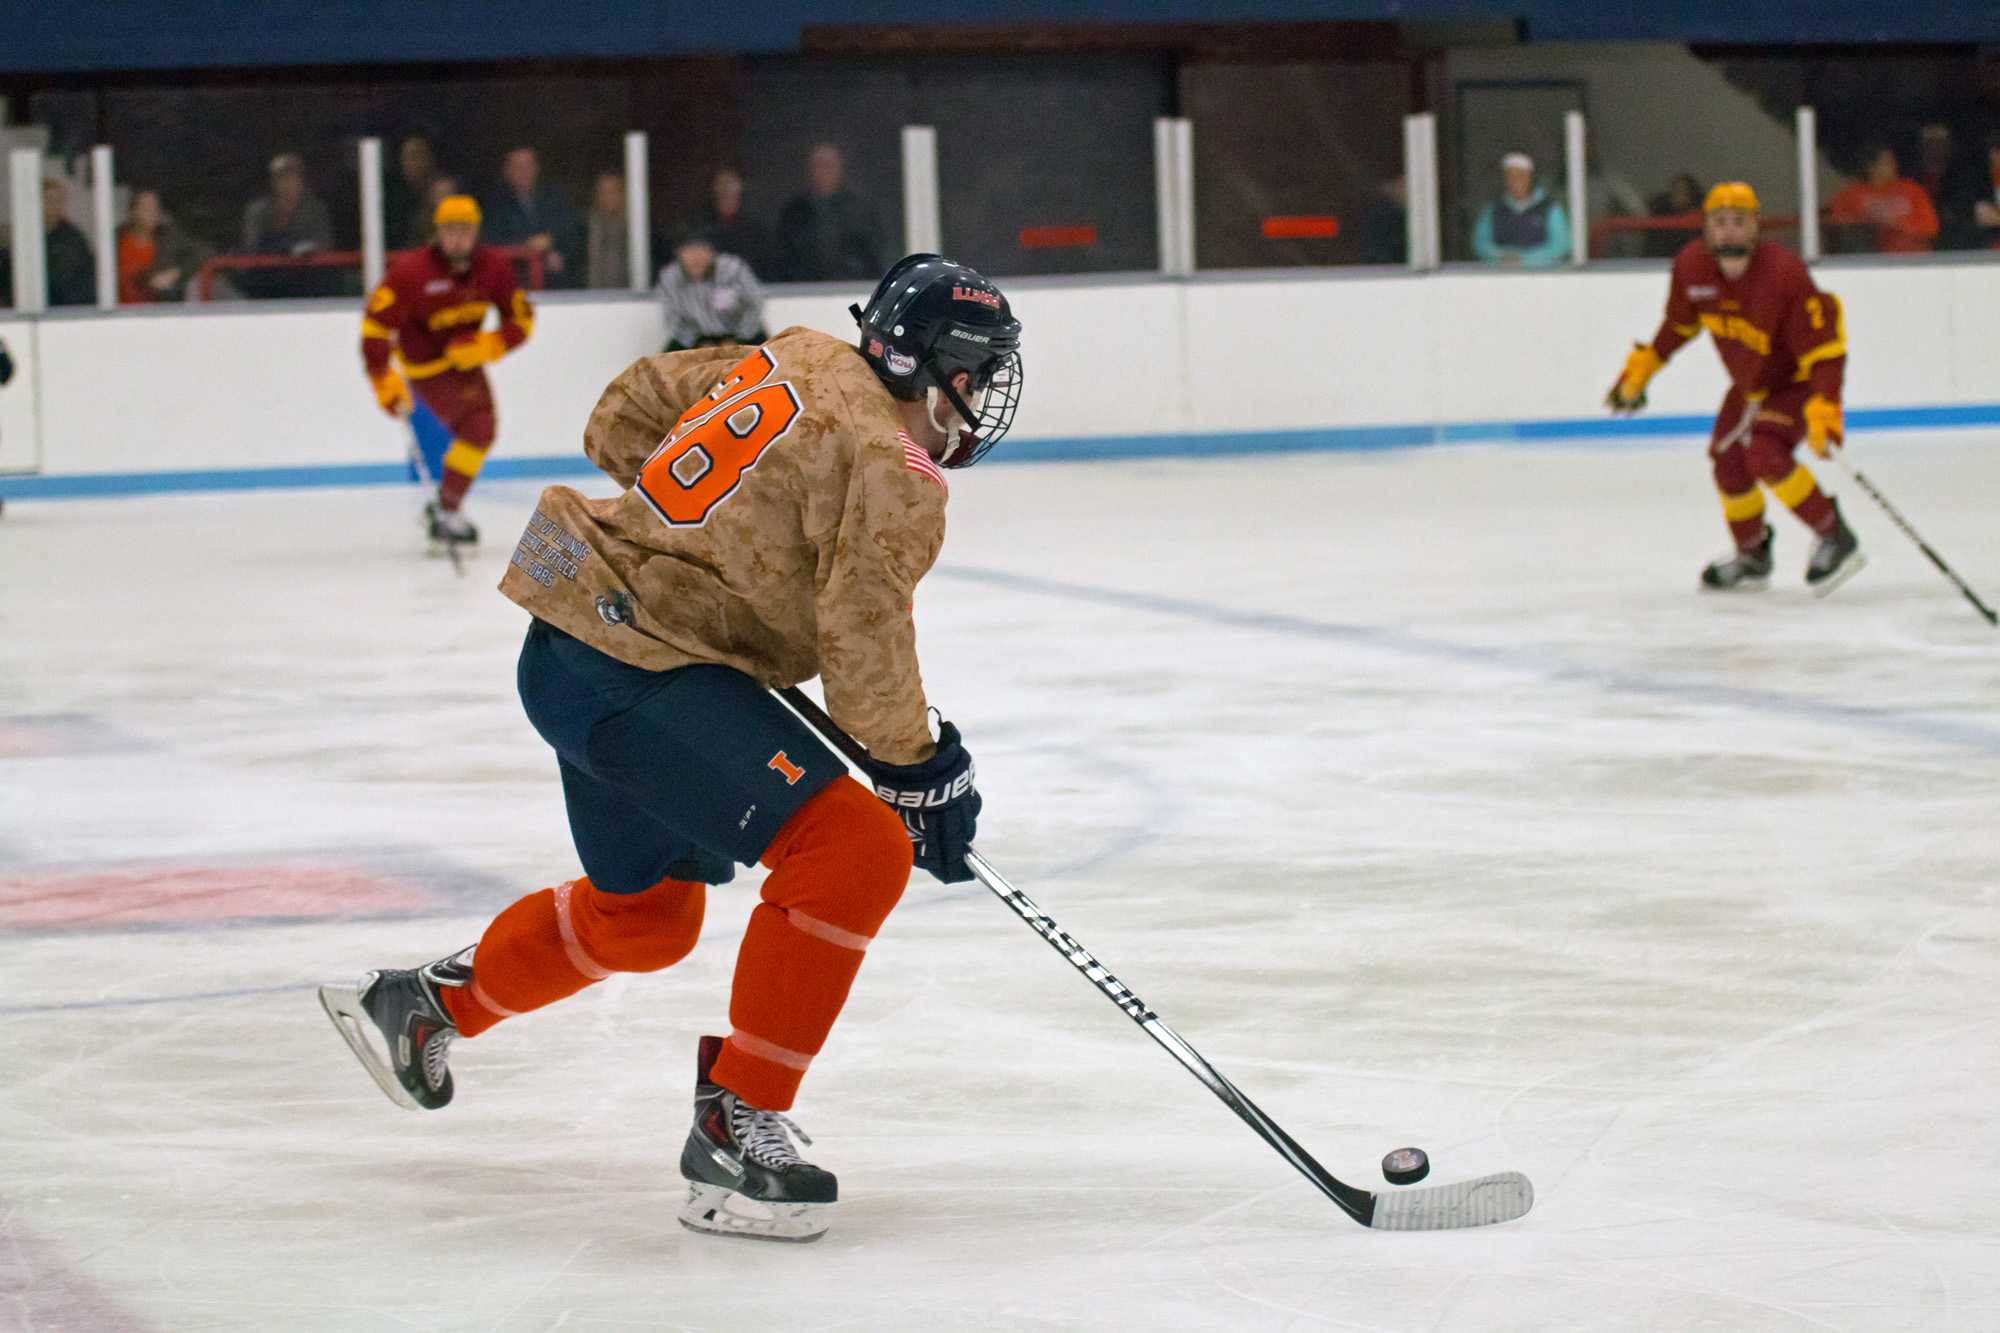 Aaron Dusek carries the puck up the ice during the game at the Ice Arena against Iowa State on Friday, November 13. Illinois won 4-3 in a shootout.